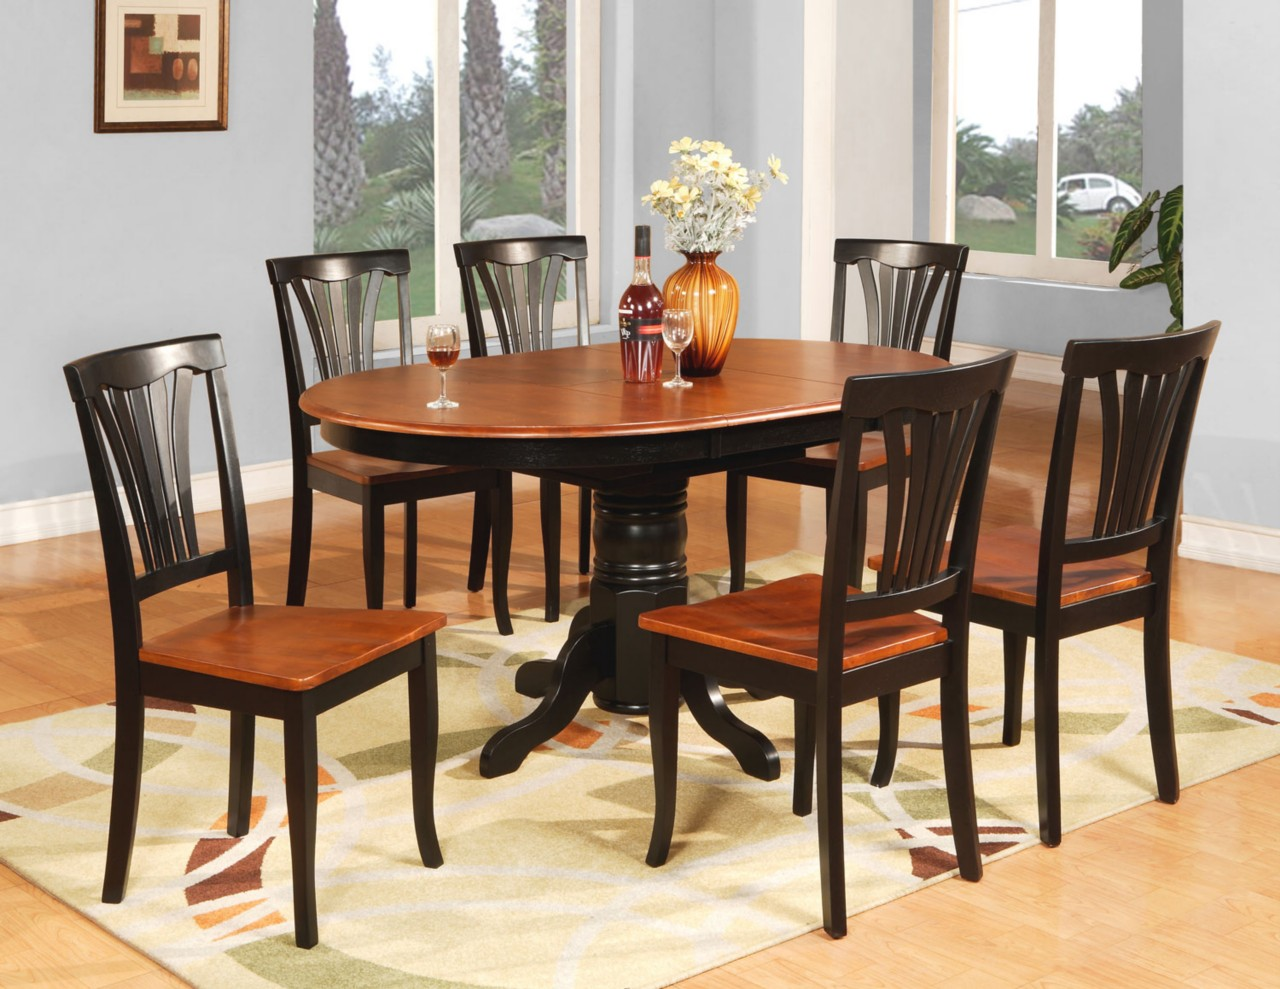 7 pc oval dinette kitchen dining room table 6 chairs ebay